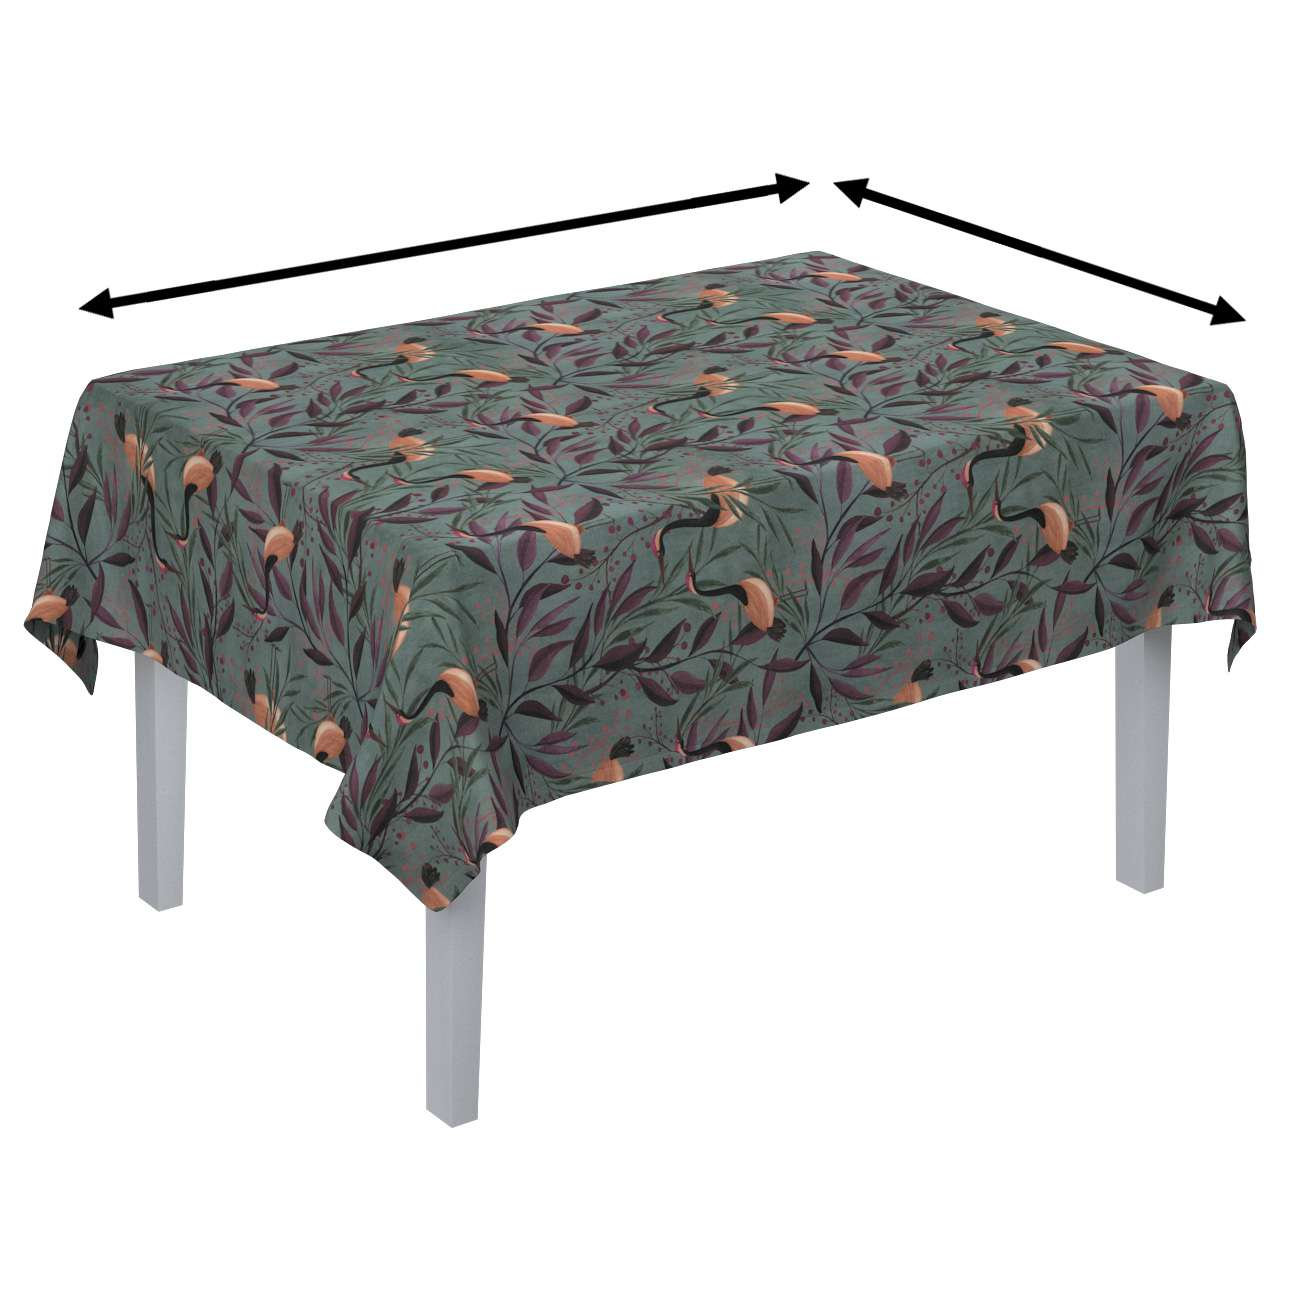 Rectangular tablecloth in collection Abigail, fabric: 143-11